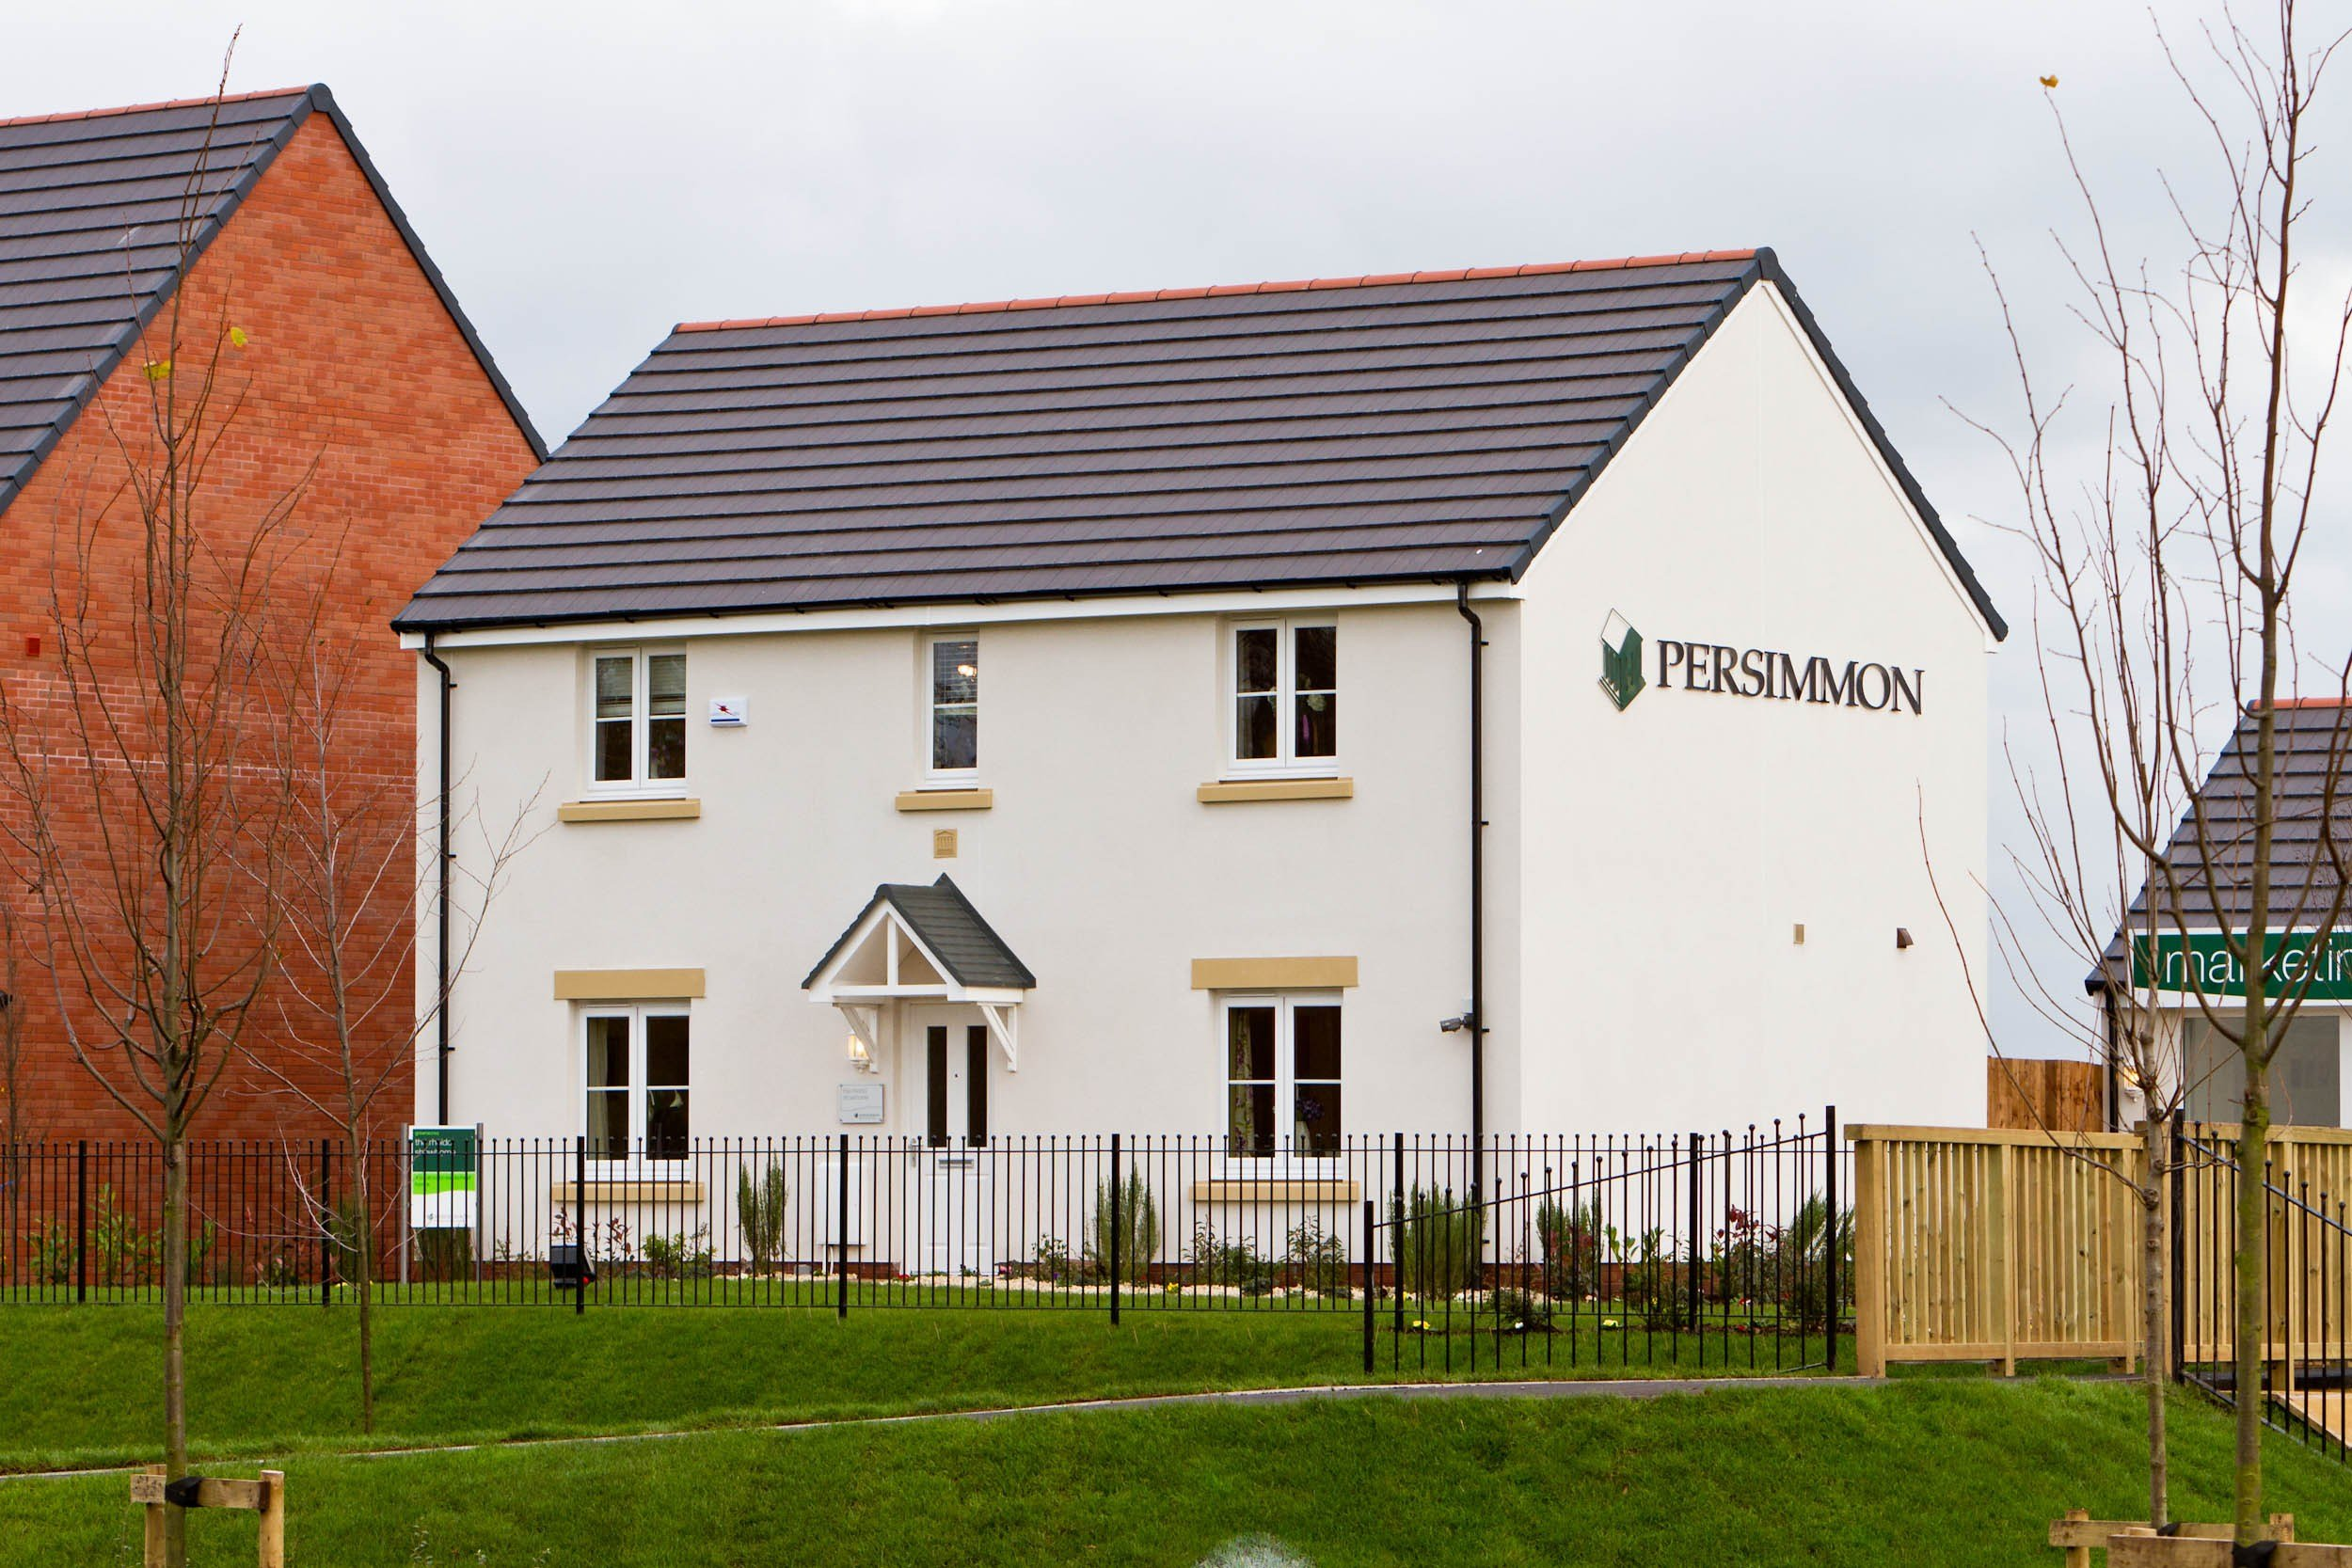 Best Houses For Sale In Newport Gwent Np19 4Qz Greenacres With Pictures